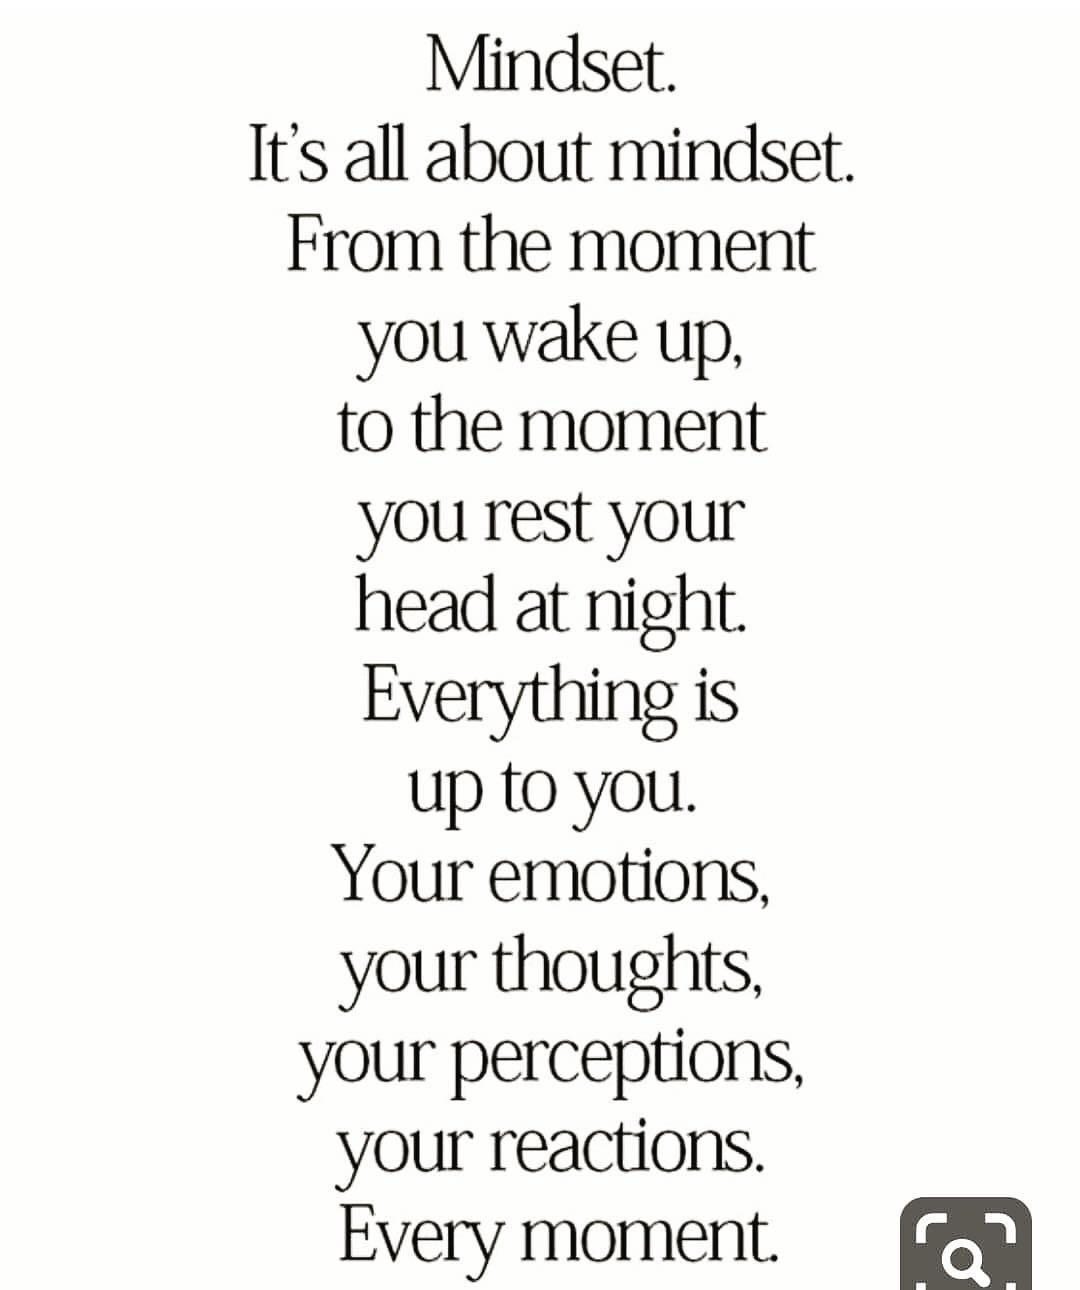 Image may contain: text that says 'Mindset. It's all about mindset. From the moment you wake up, to the moment you rest your head at night. Everything is up to you. Your emotions, your thoughts, your perceptions, your reactions. Every moment. ים'